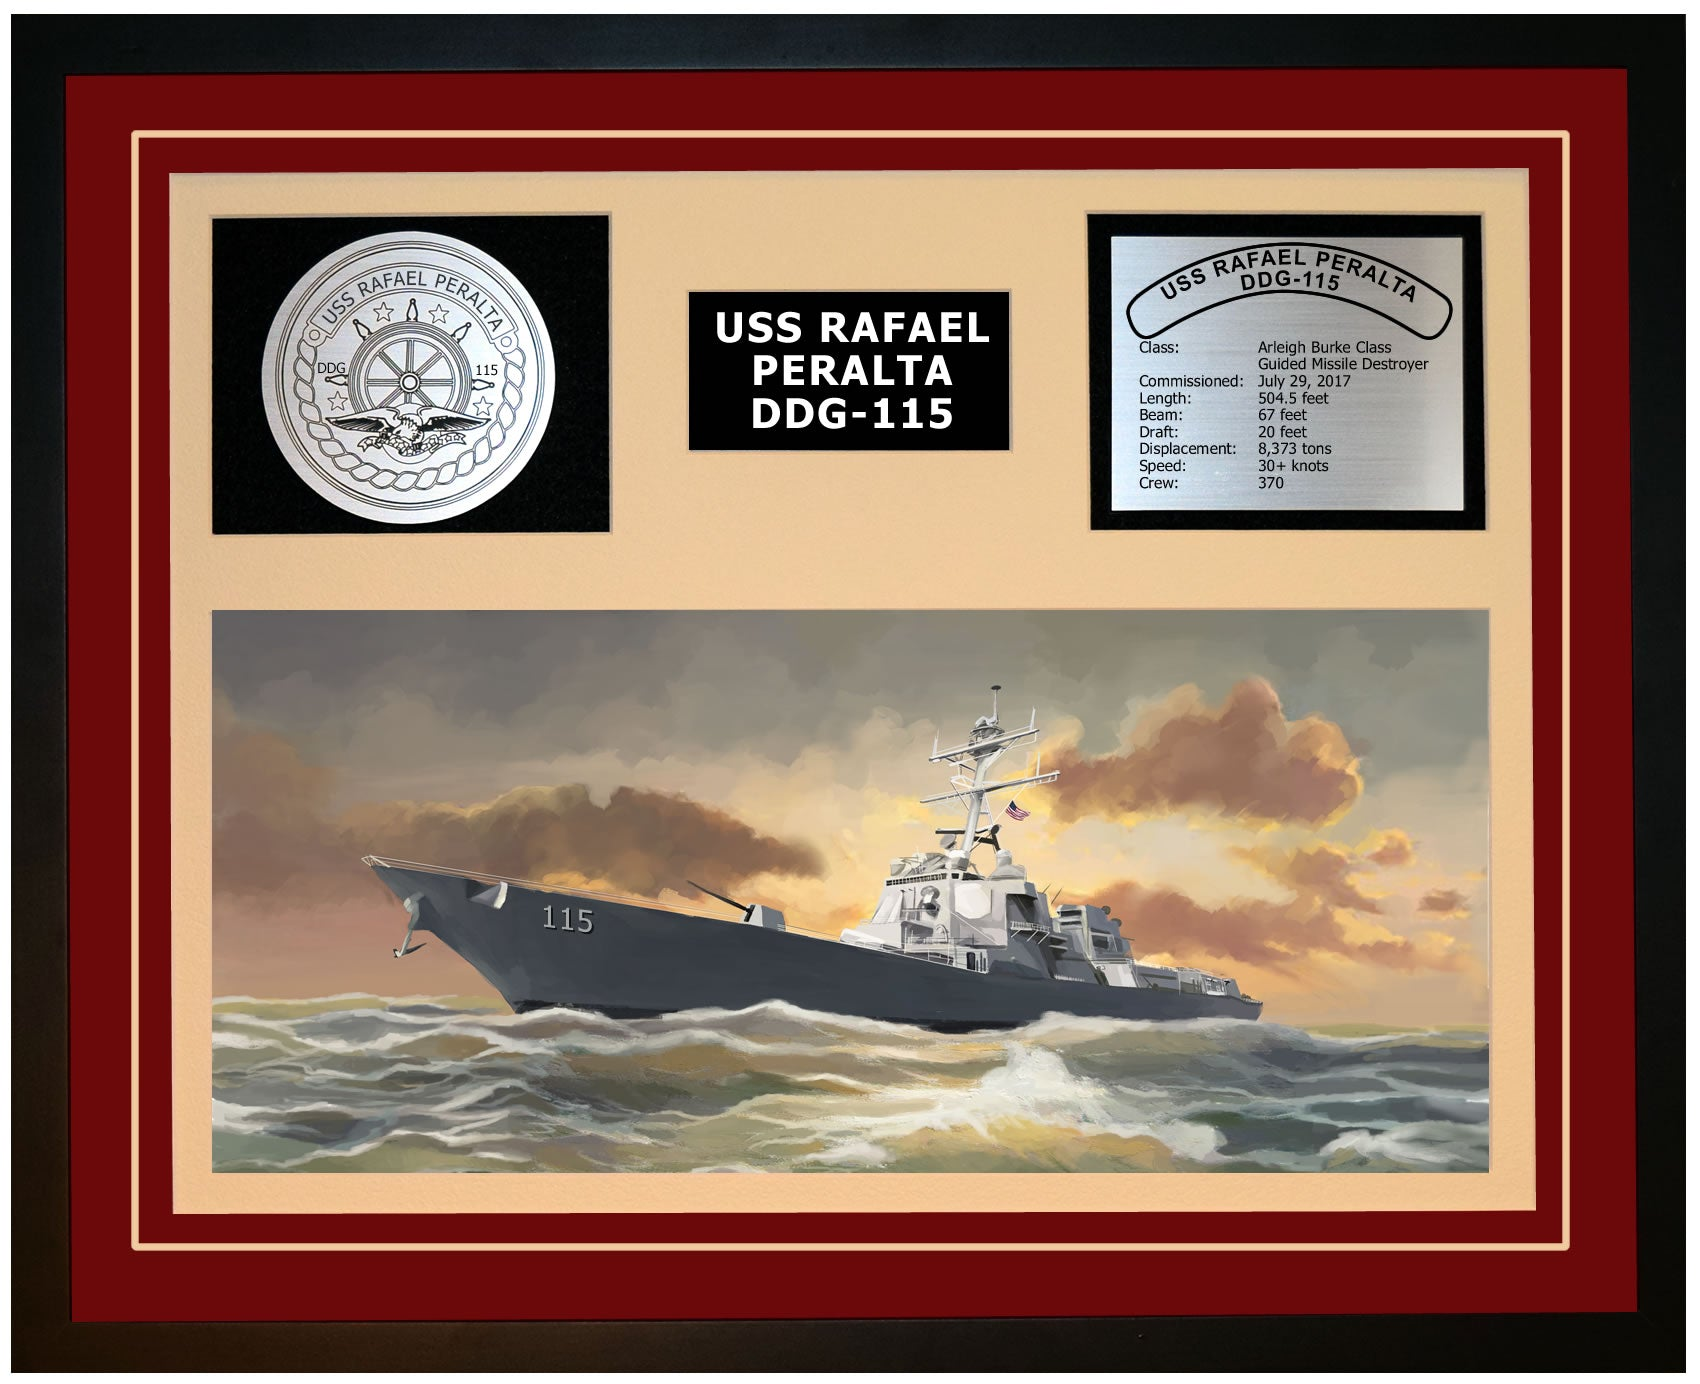 USS RAFAEL PERALTA DDG-115 Framed Navy Ship Display Burgundy